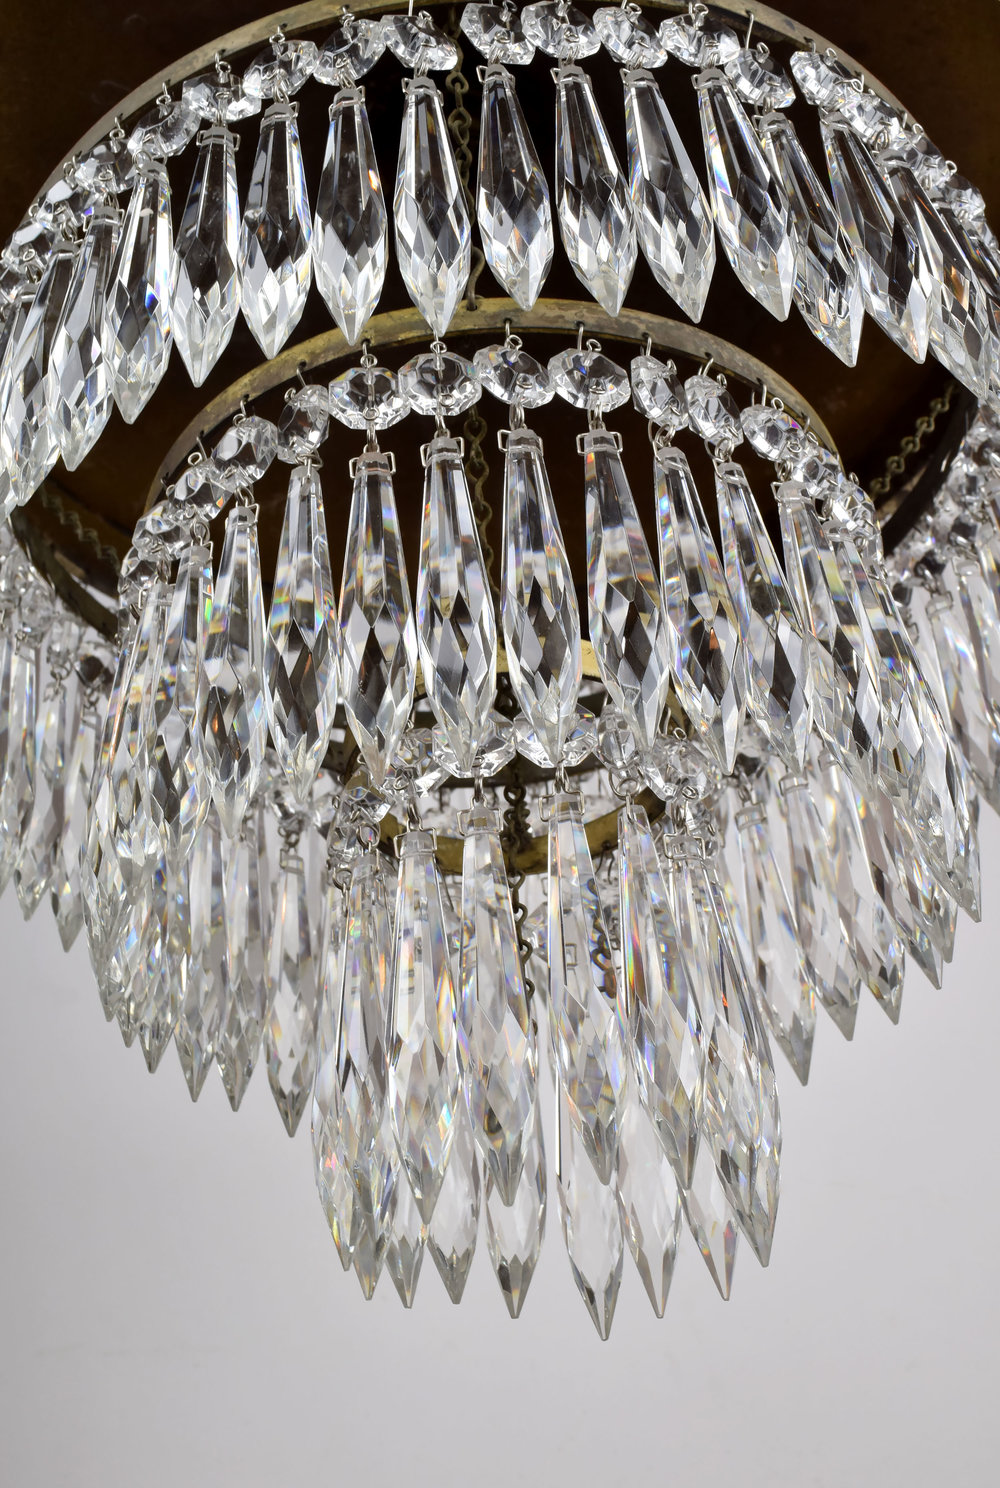 47125-wedding-cake-chandelier-lower-angle.jpg